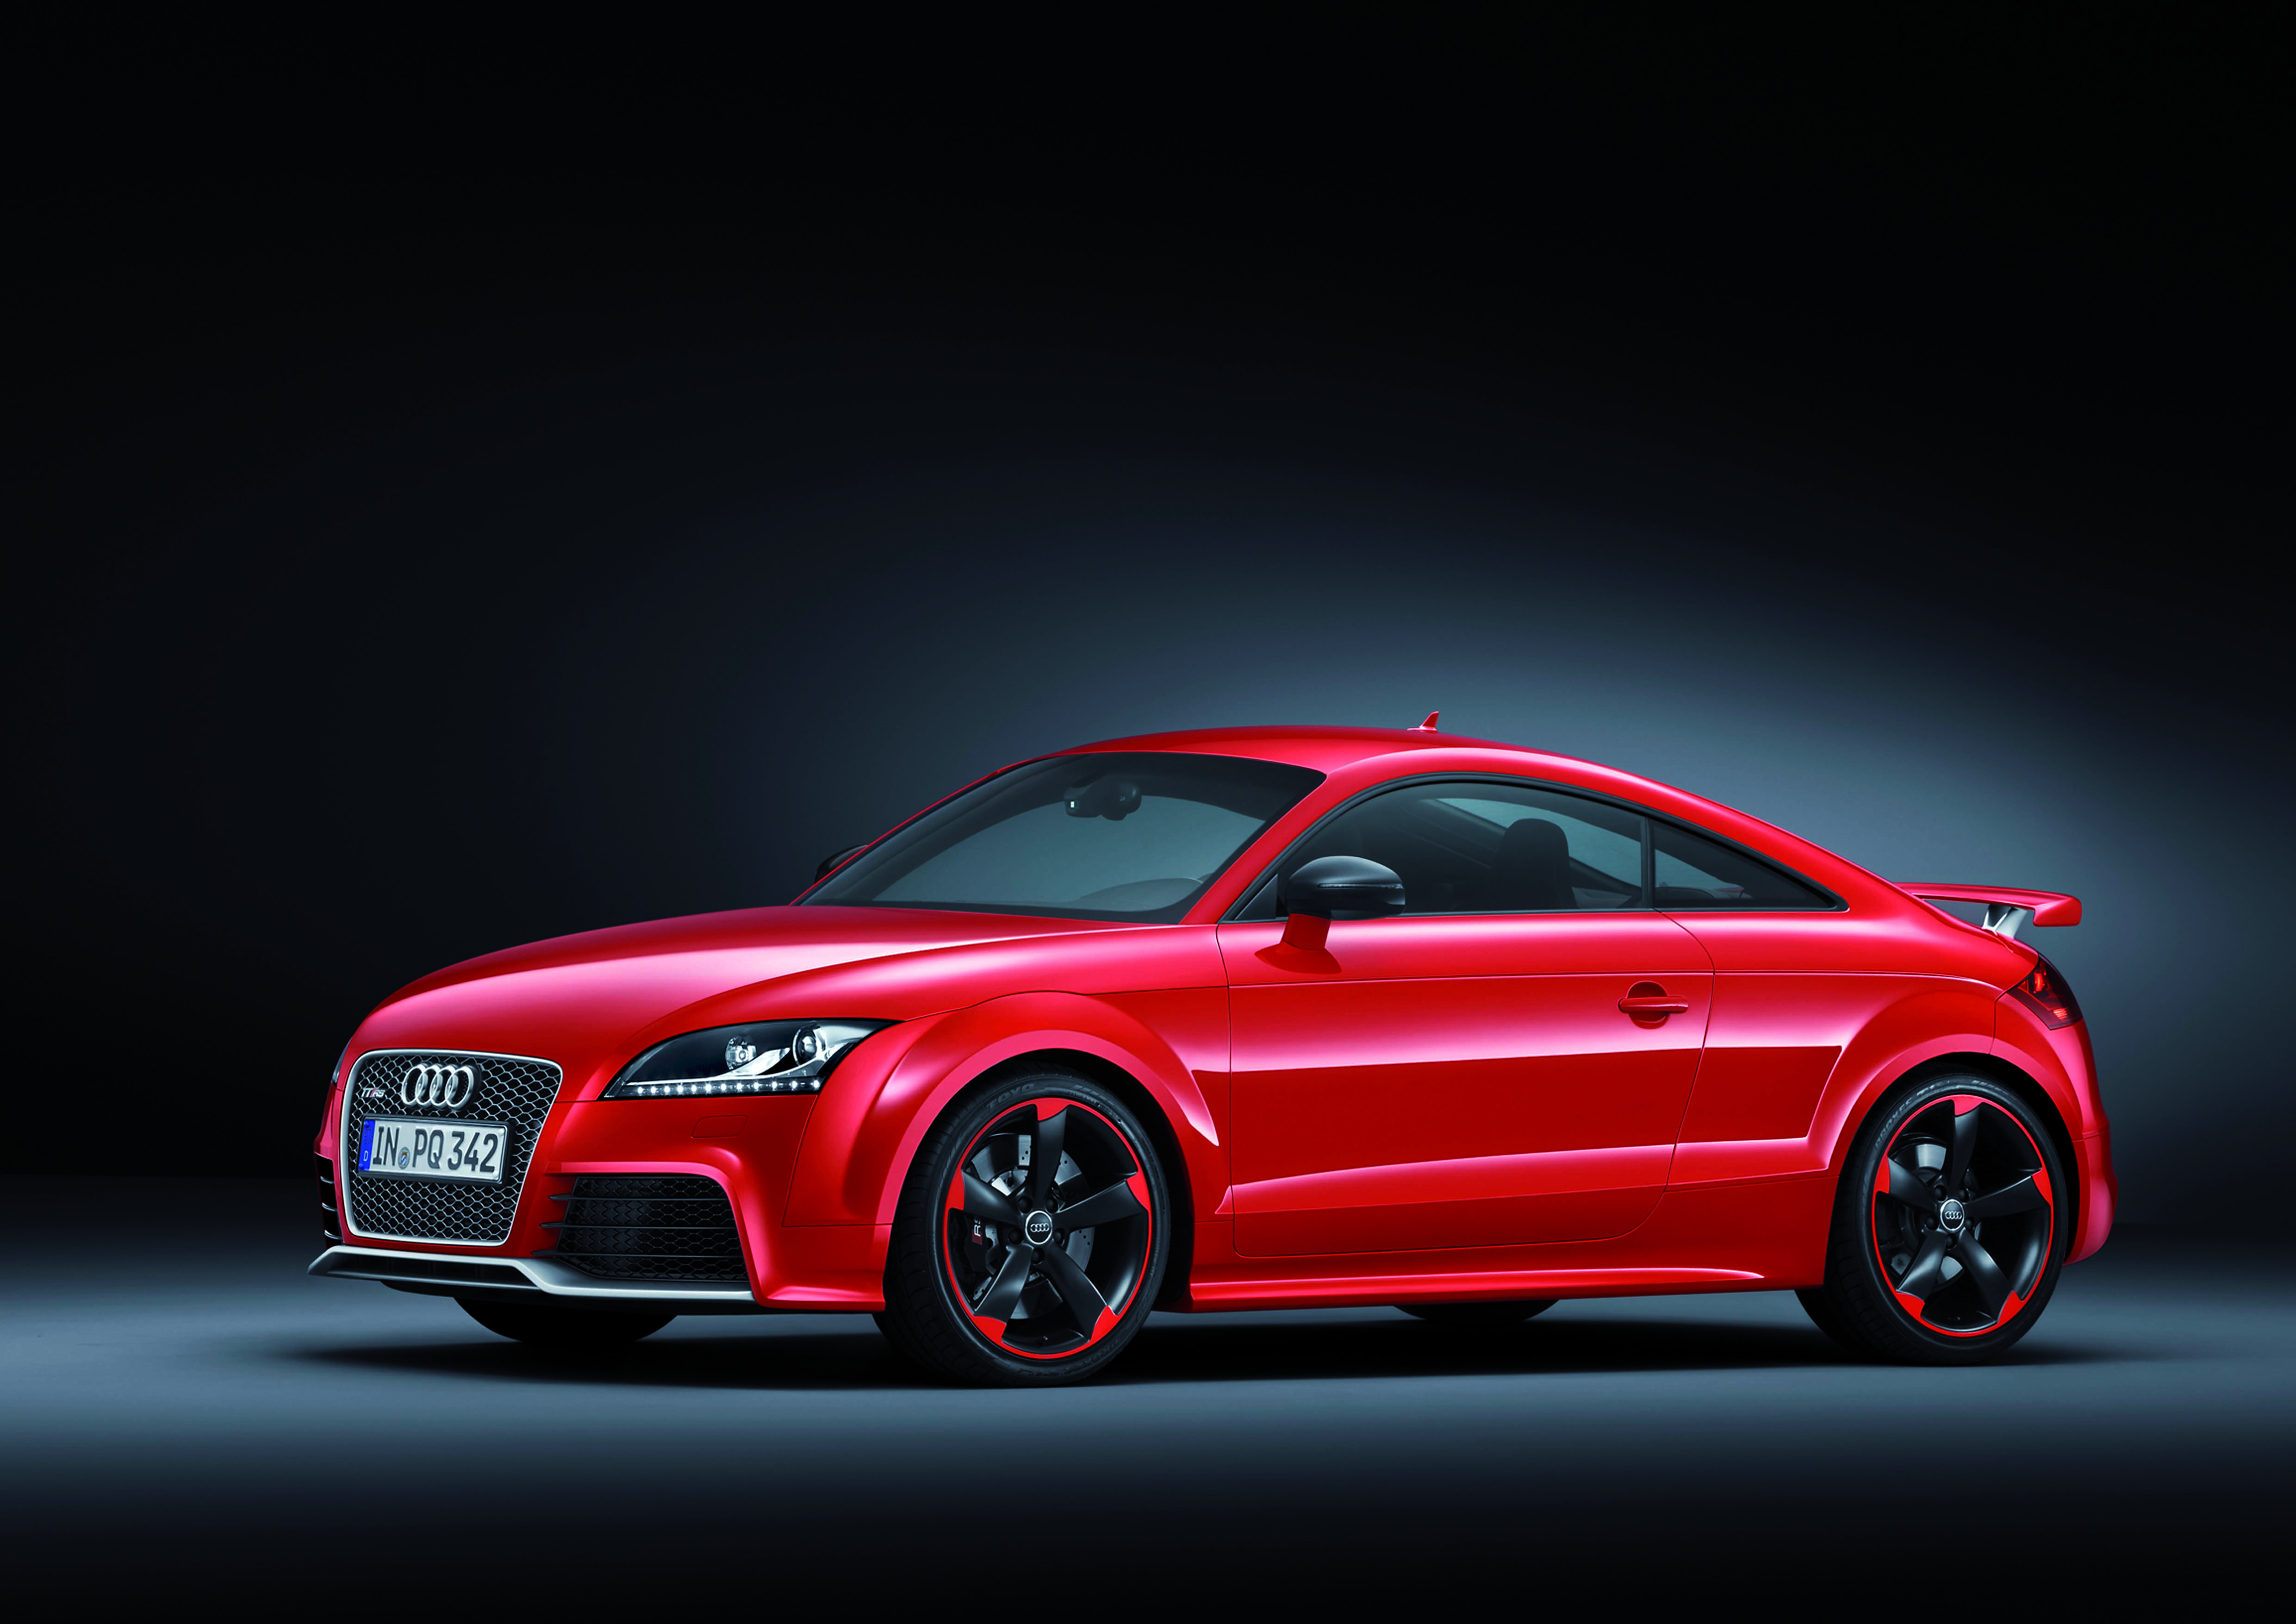 Audi Tt Rs Plus 5 Cylinder Turbo With More Power Paul